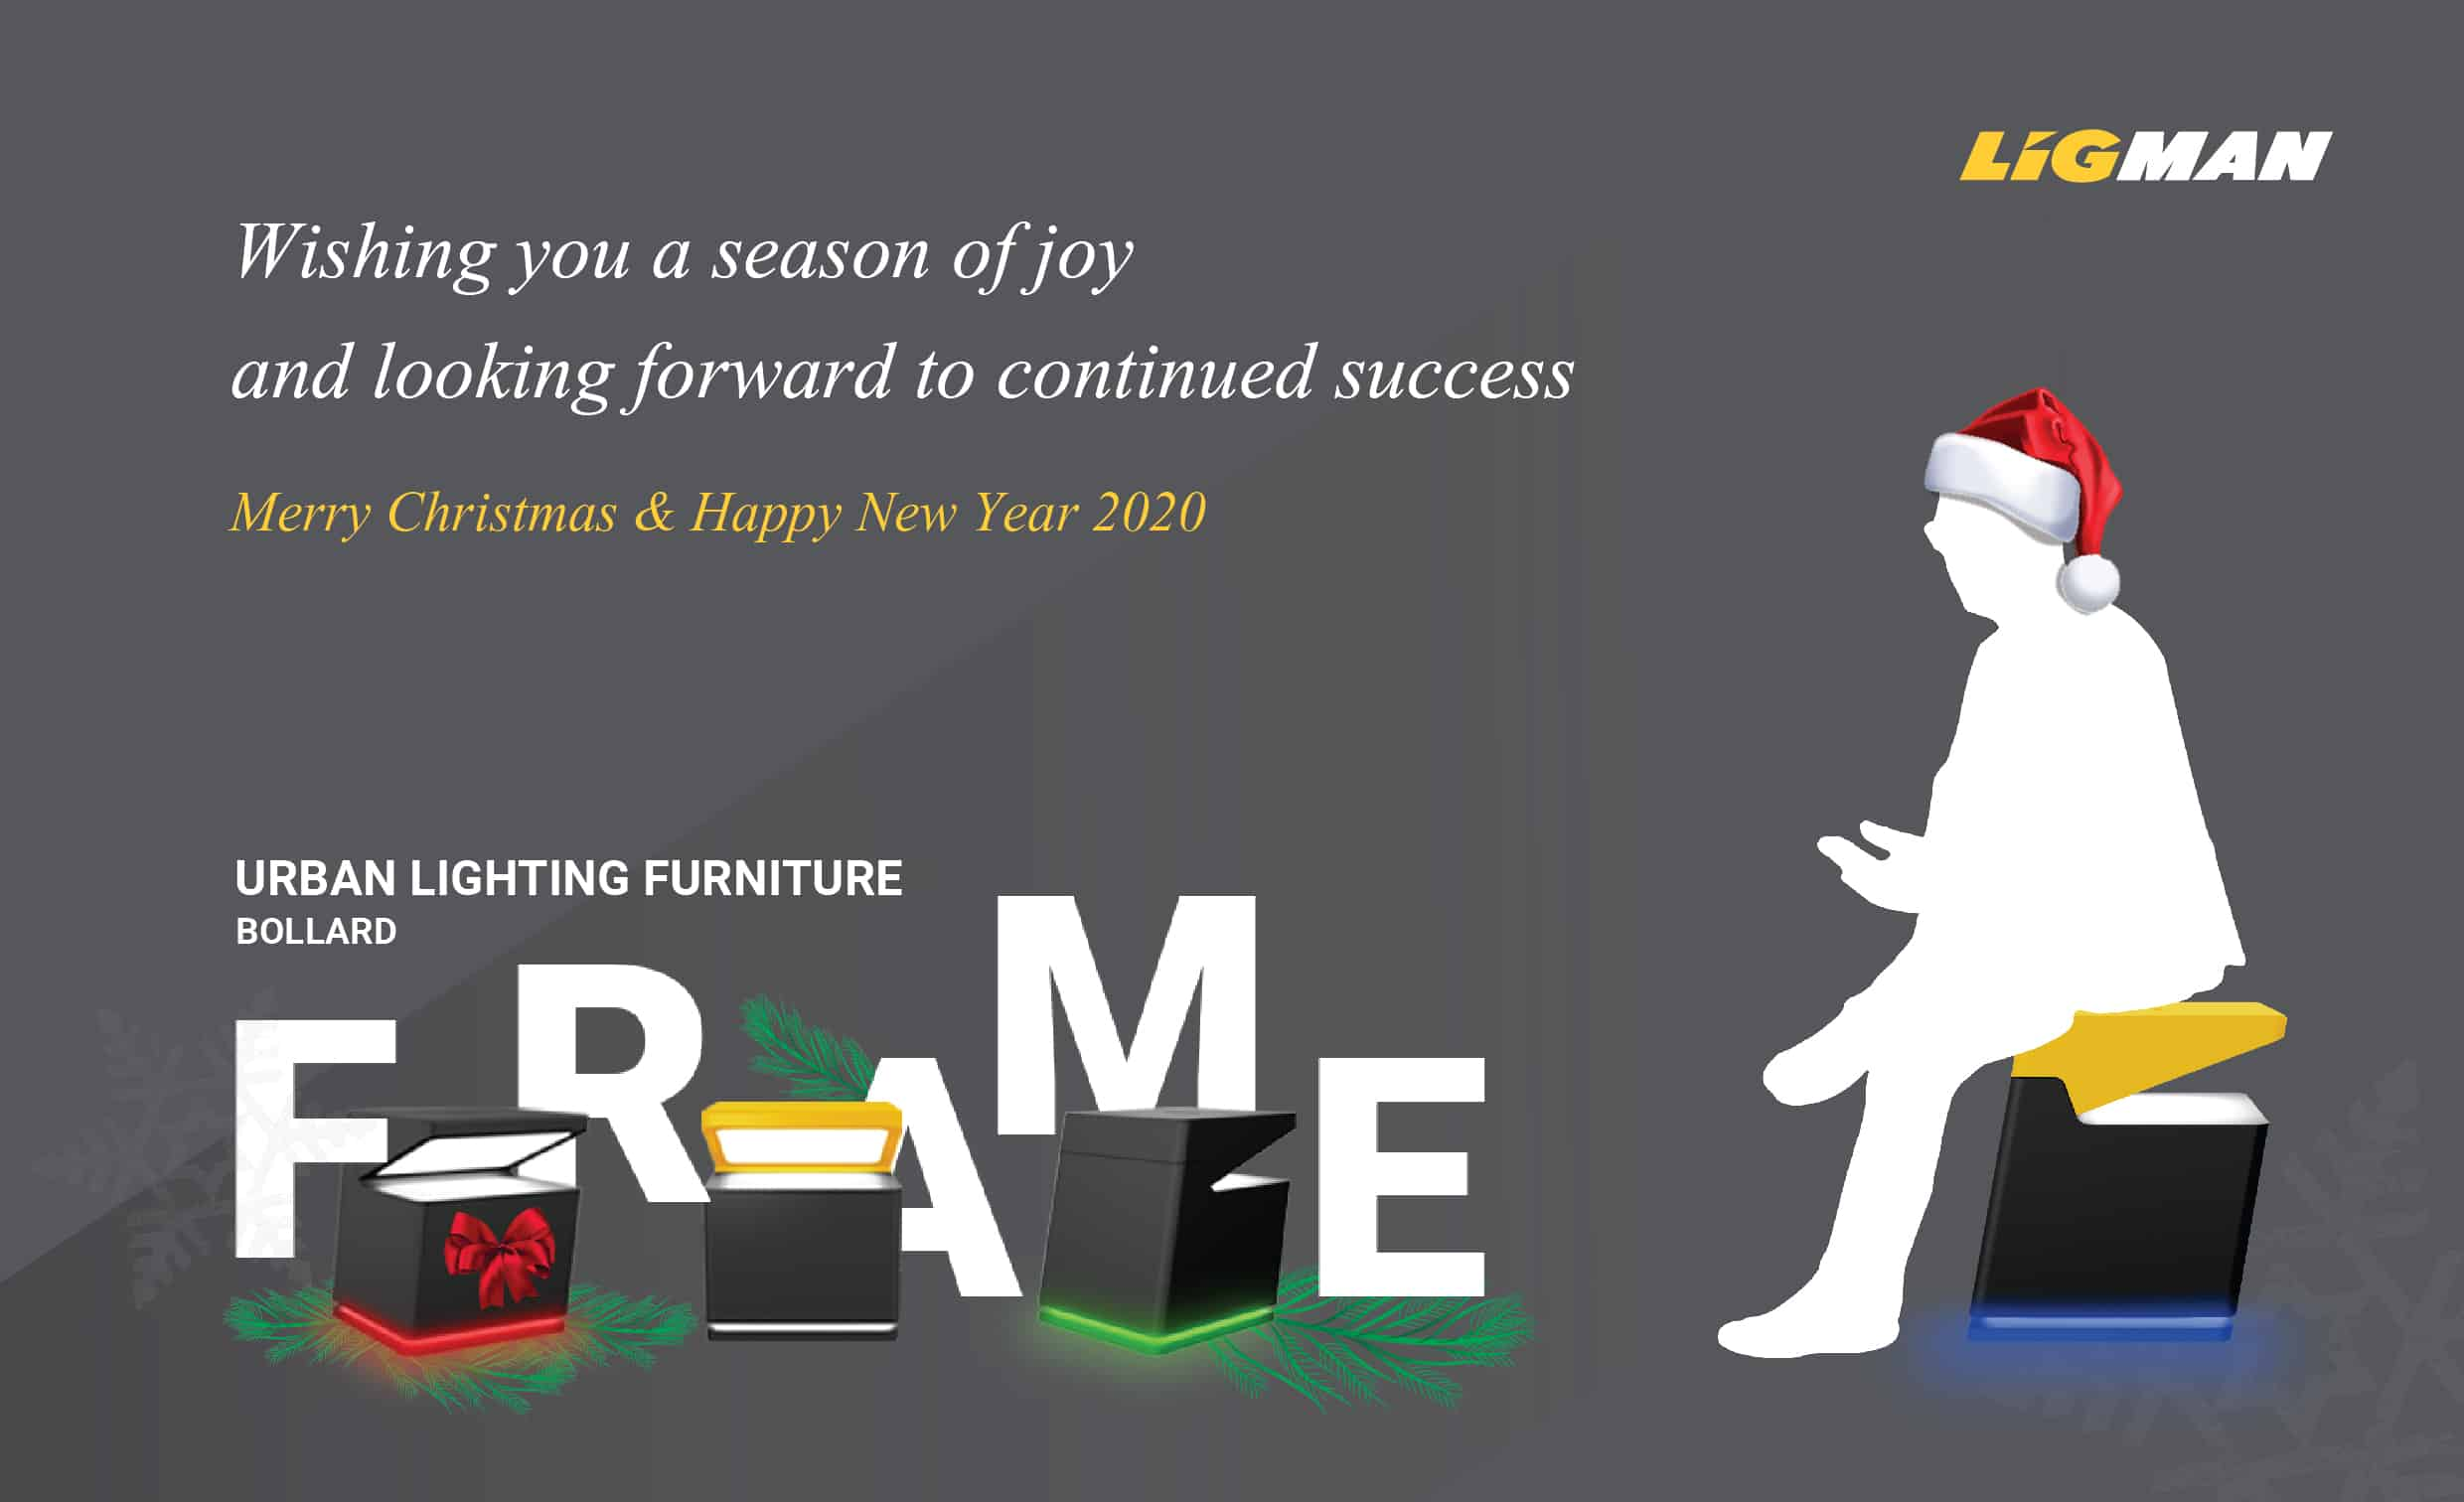 Merry Christmas and a Happy New Year from LIGMAN